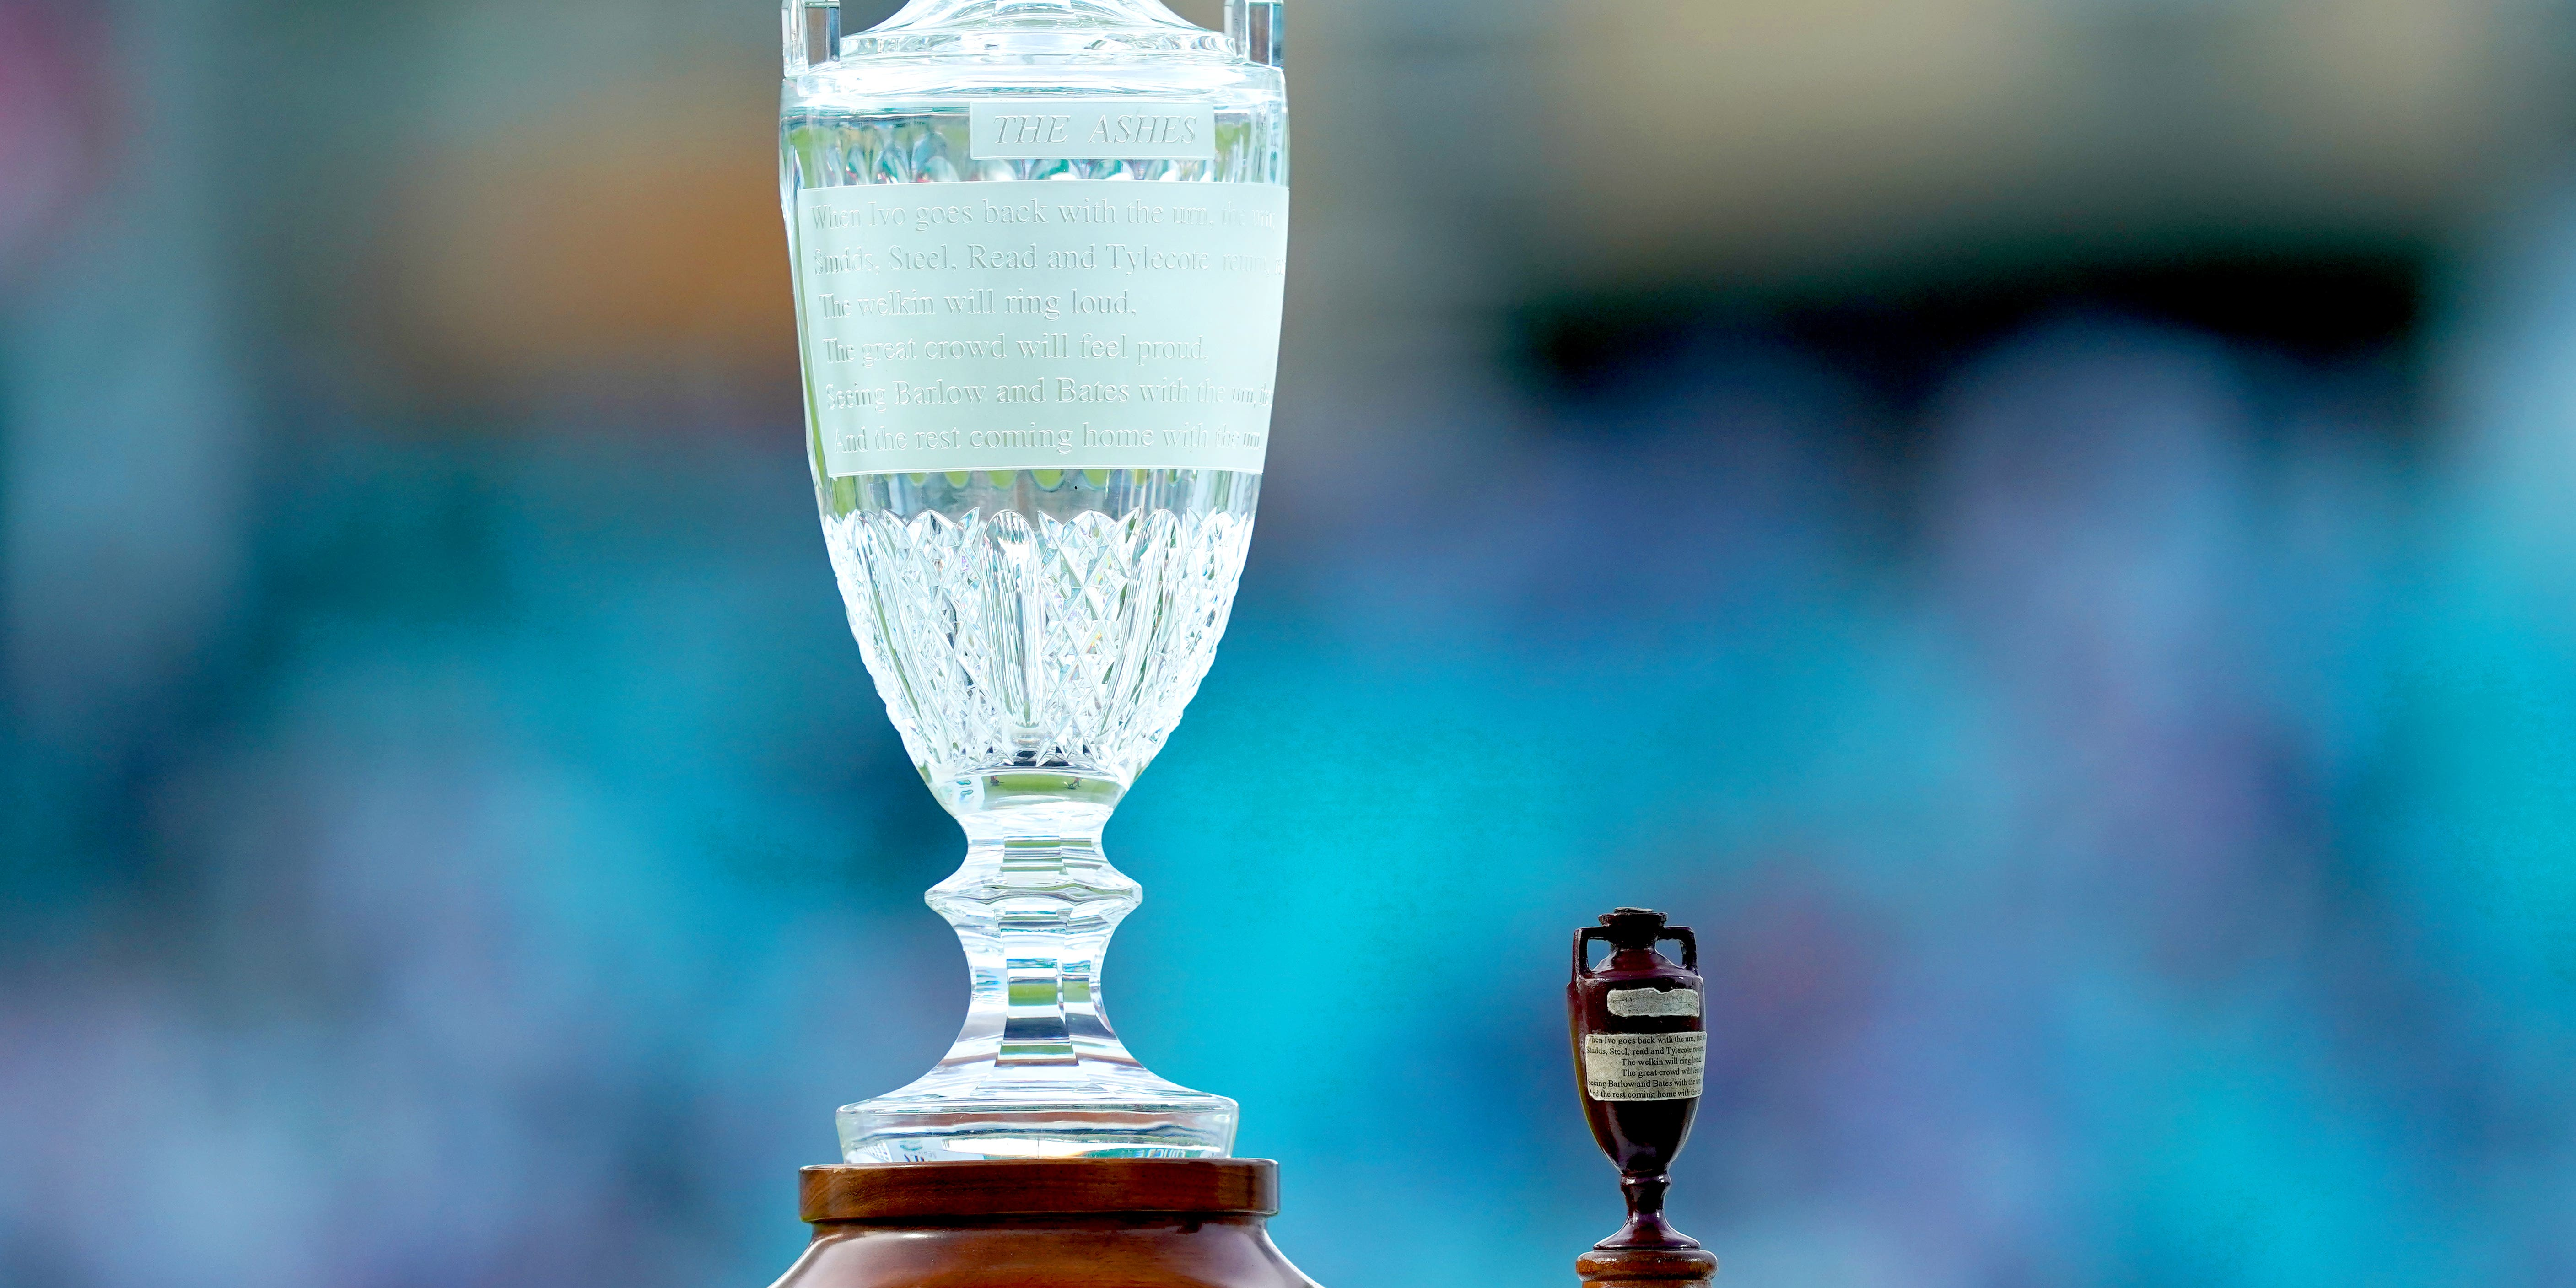 ECB putting player welfare first as coronavirus hampers Ashes travel plans